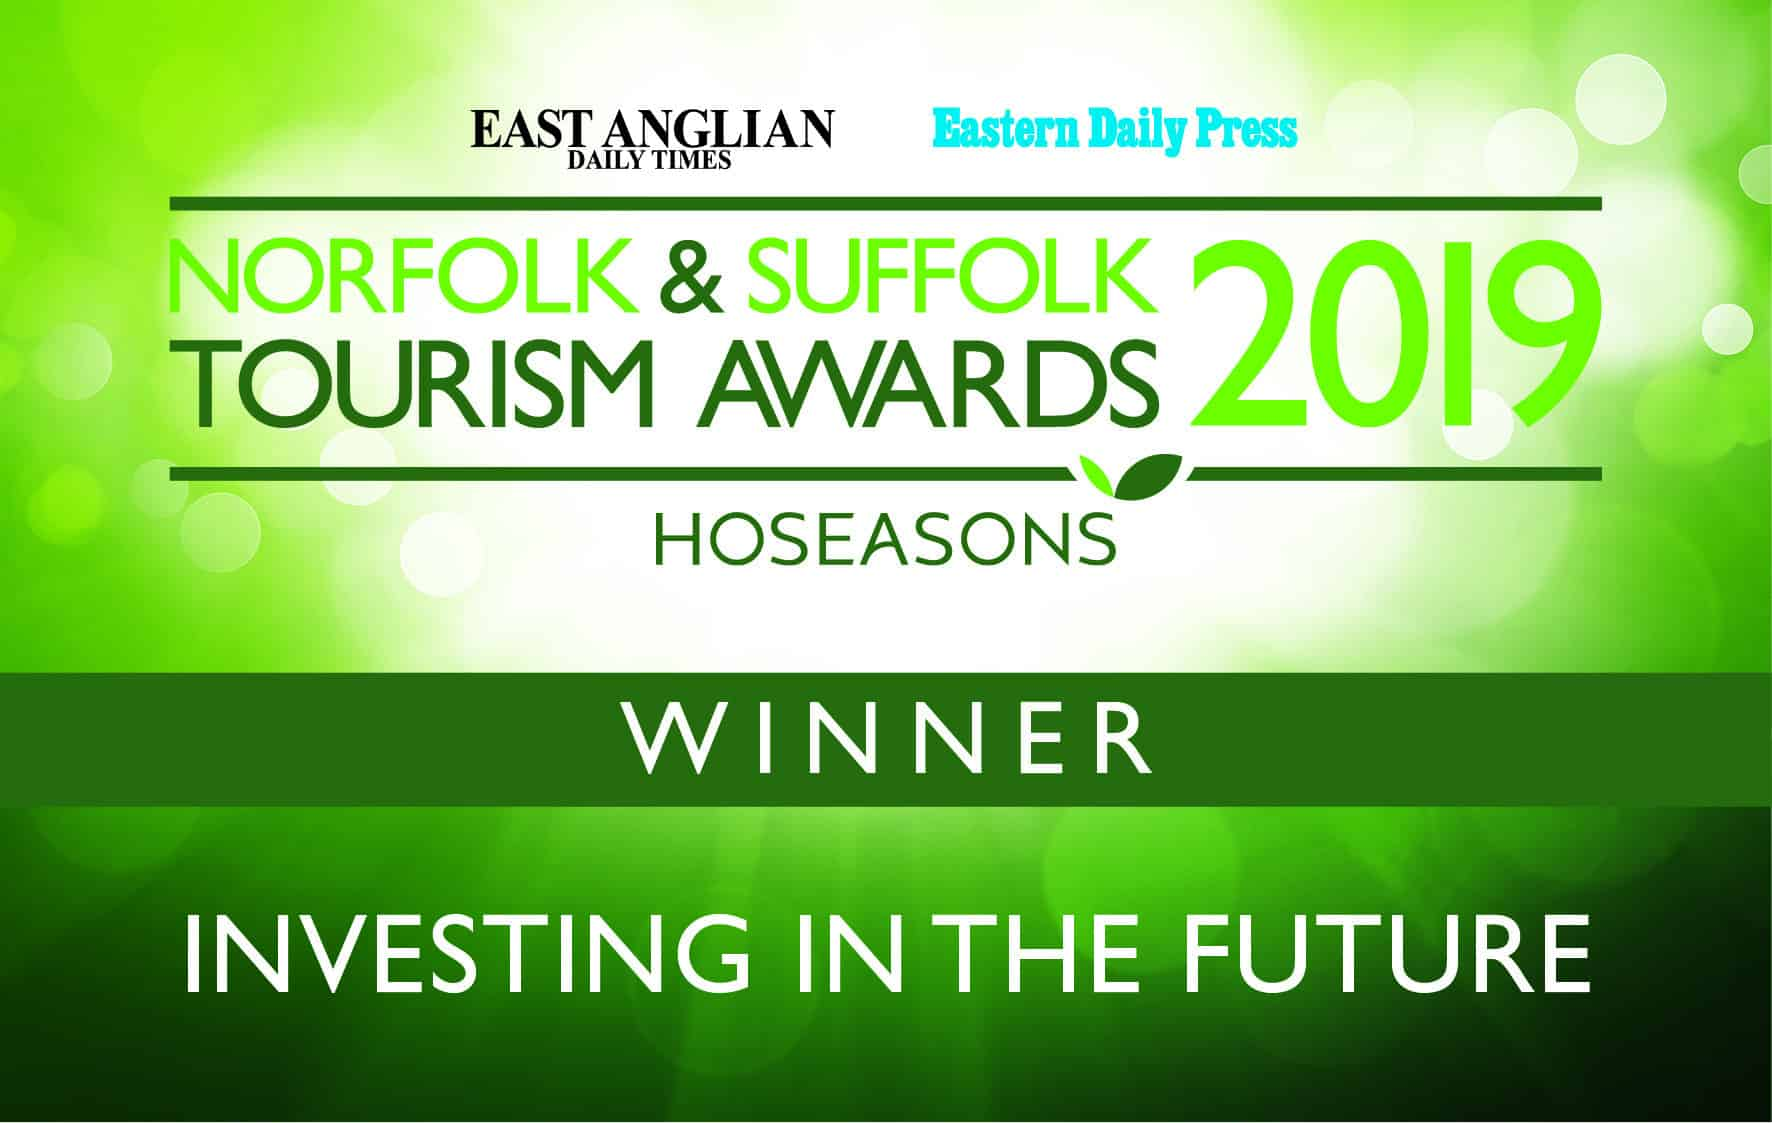 Tourism Awards Winner Investing in the Future